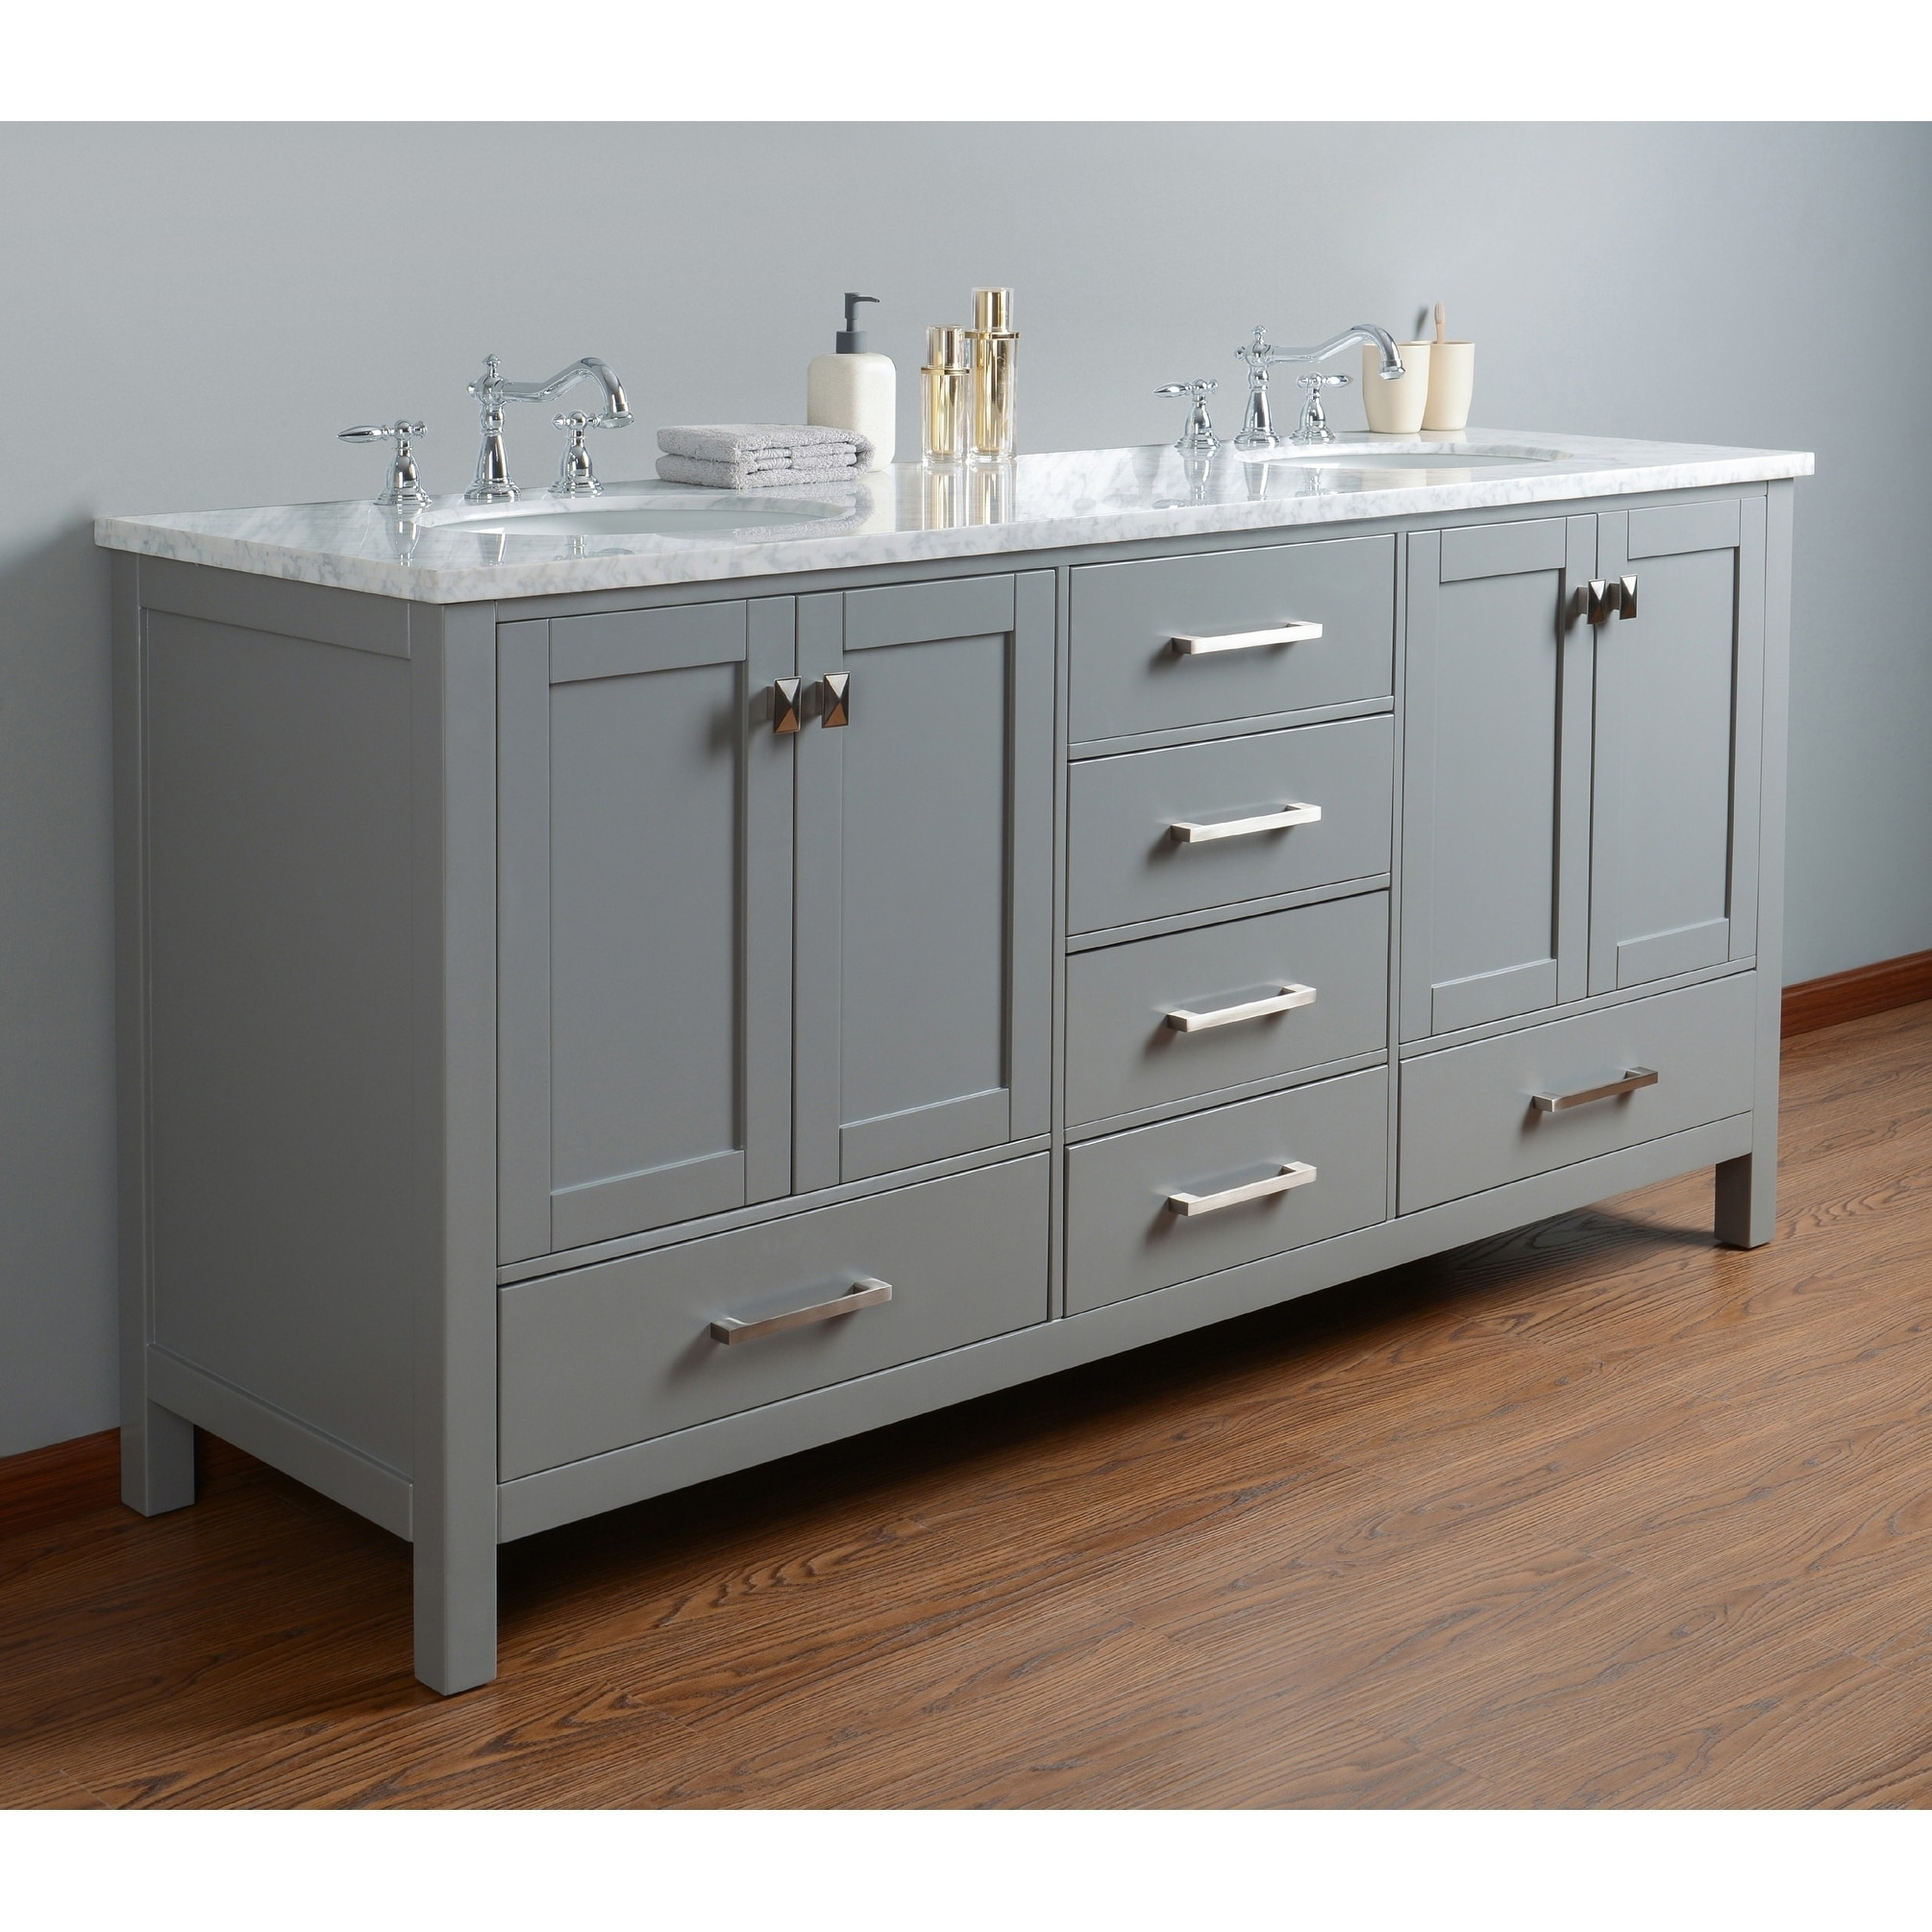 Bathroom Vanity 72 Double Sink Stufurhome 72 Inch Malibu Grey Double Sink Bathroom Vanity